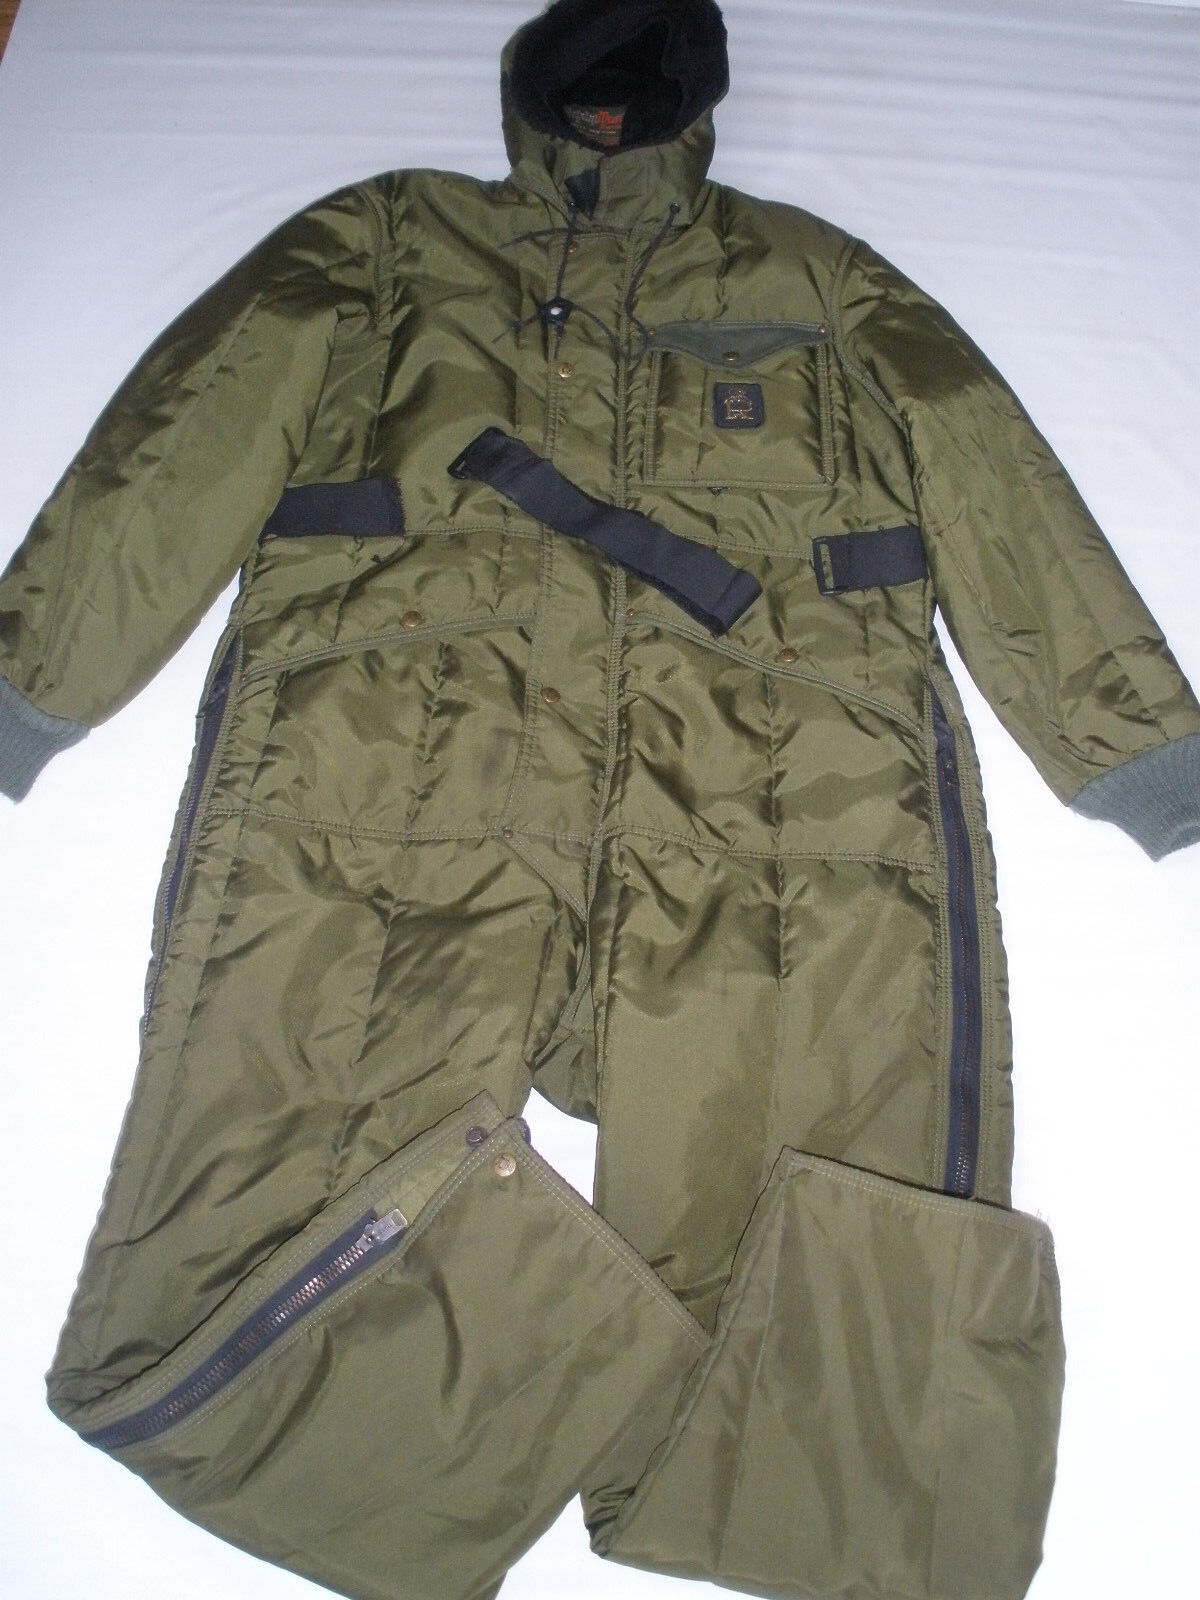 REFRIGIWEAR WINTER SNOW SKI WORK HUNTING SUIT size M  RARE NICE MADE IN USA WOW